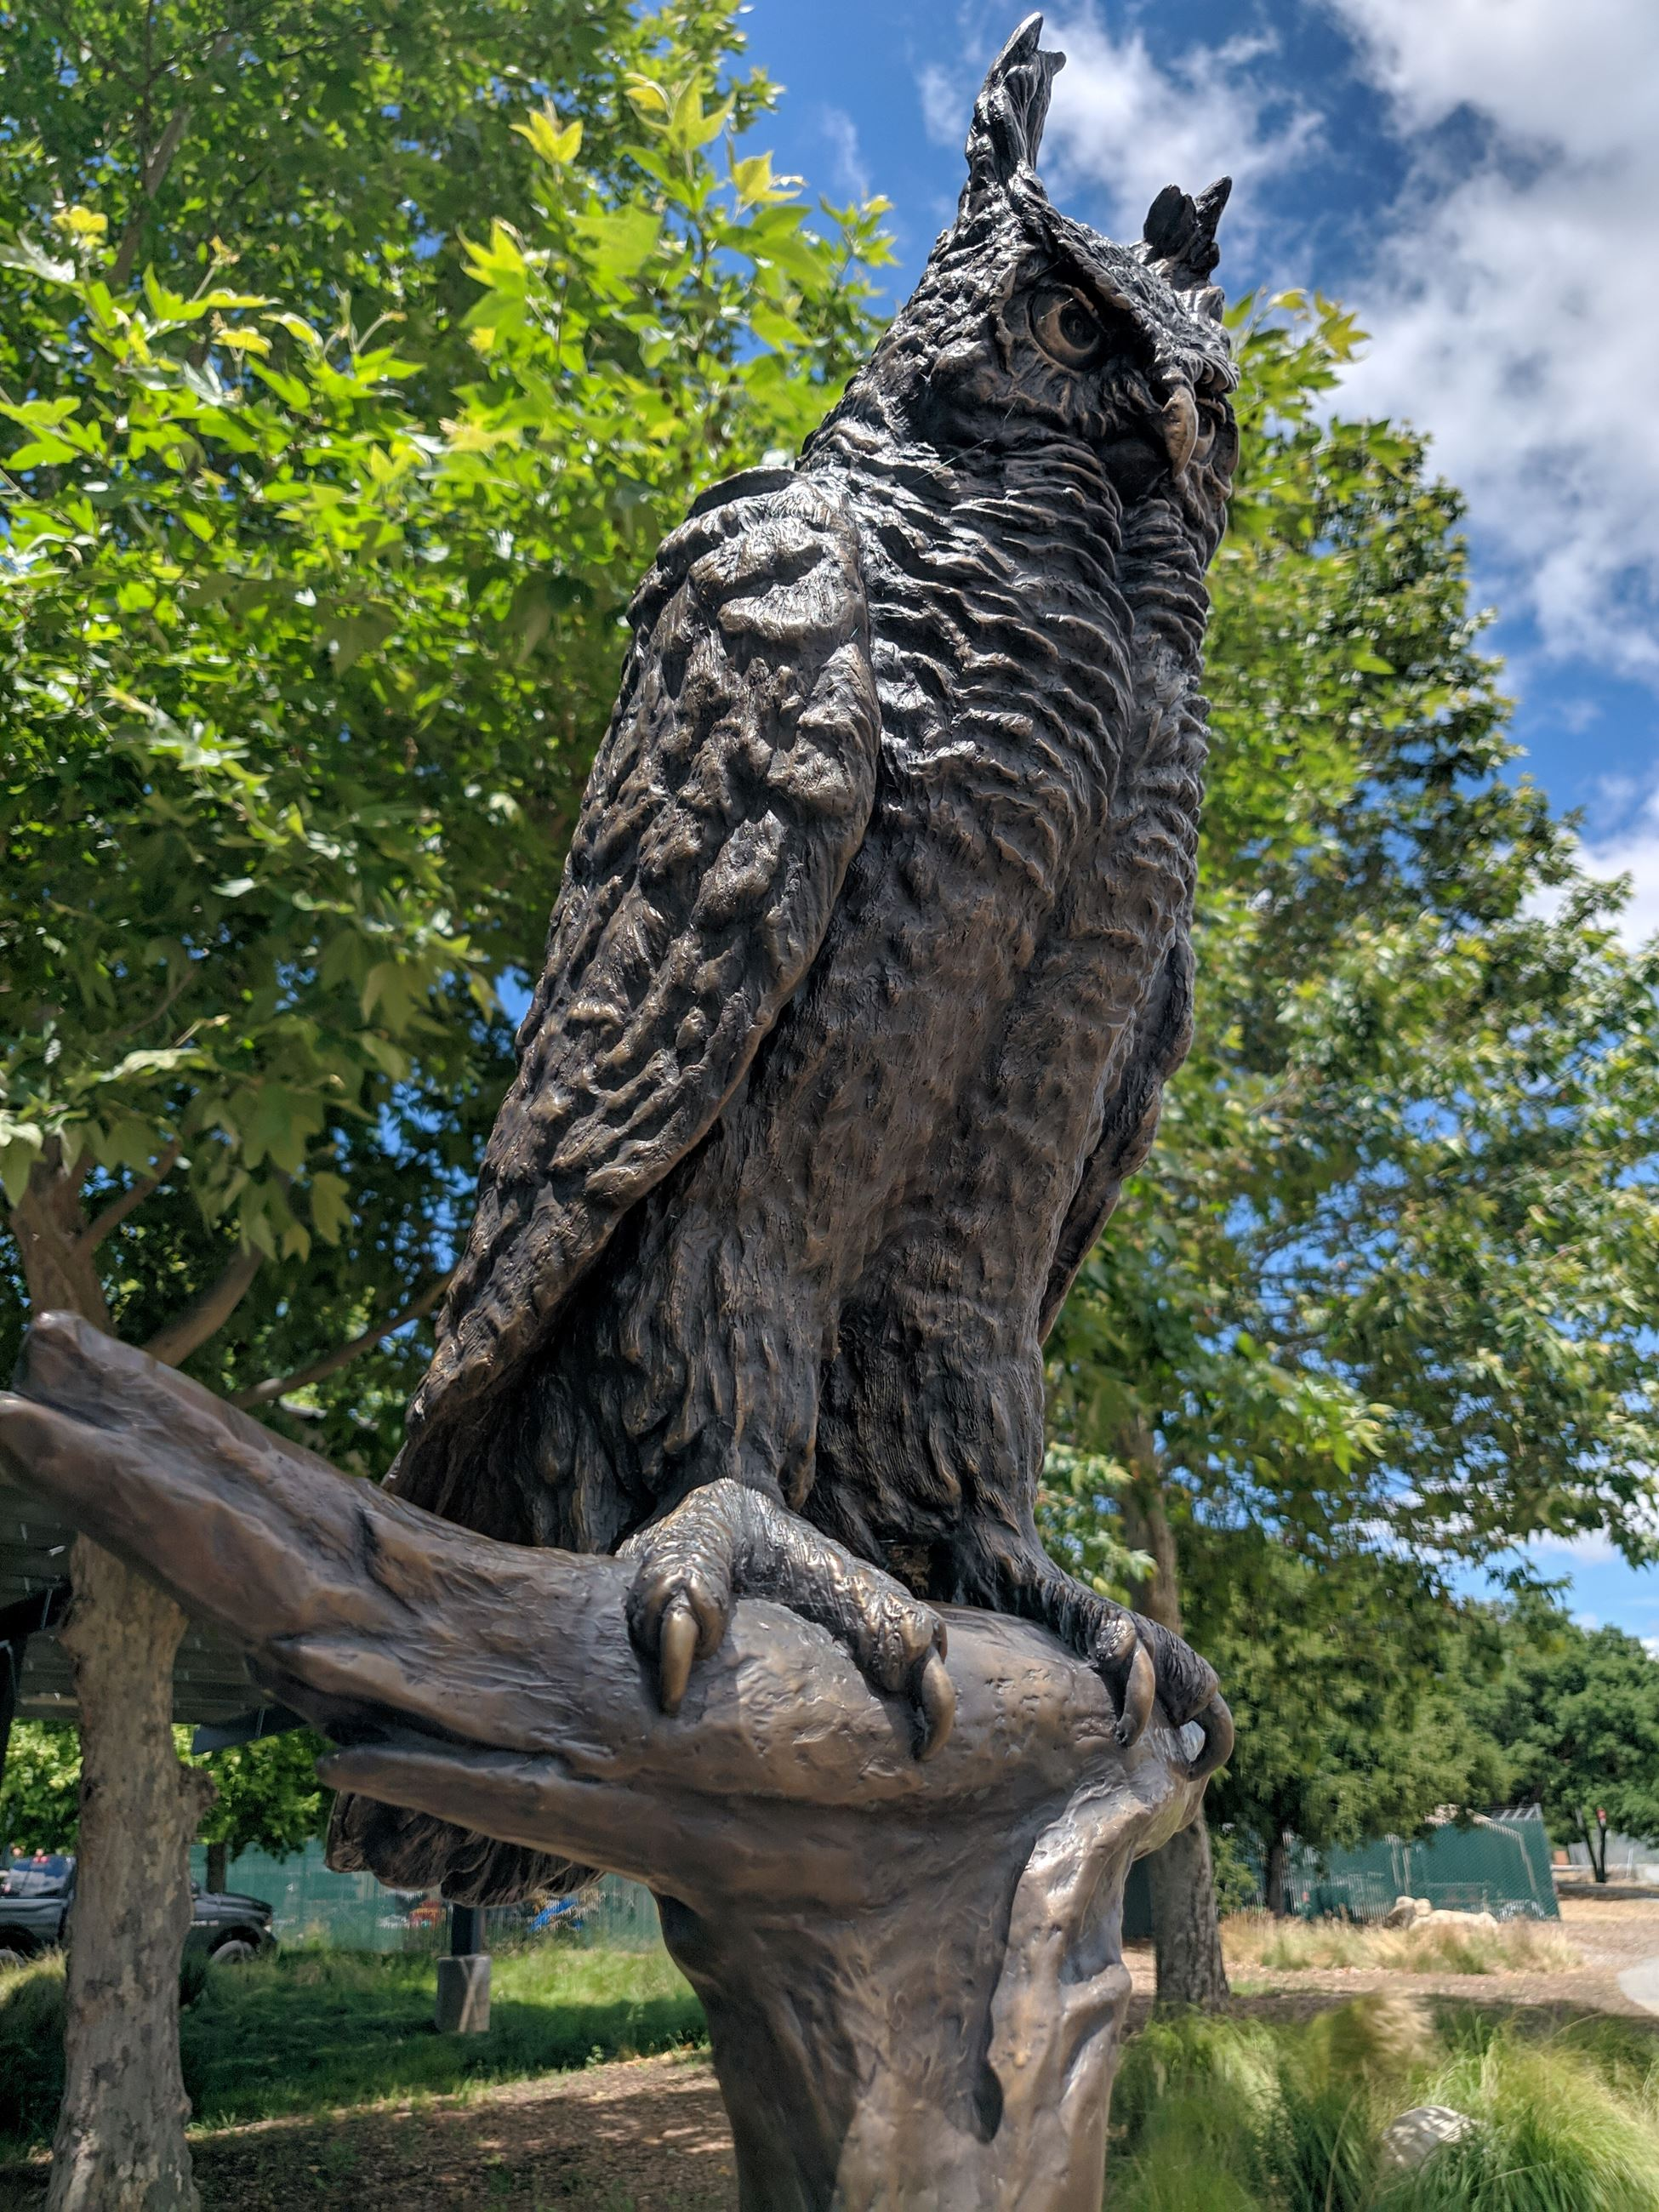 Loki the Owl Bronze Sculpture by Evelyn Davis at Centennial Recreation Center